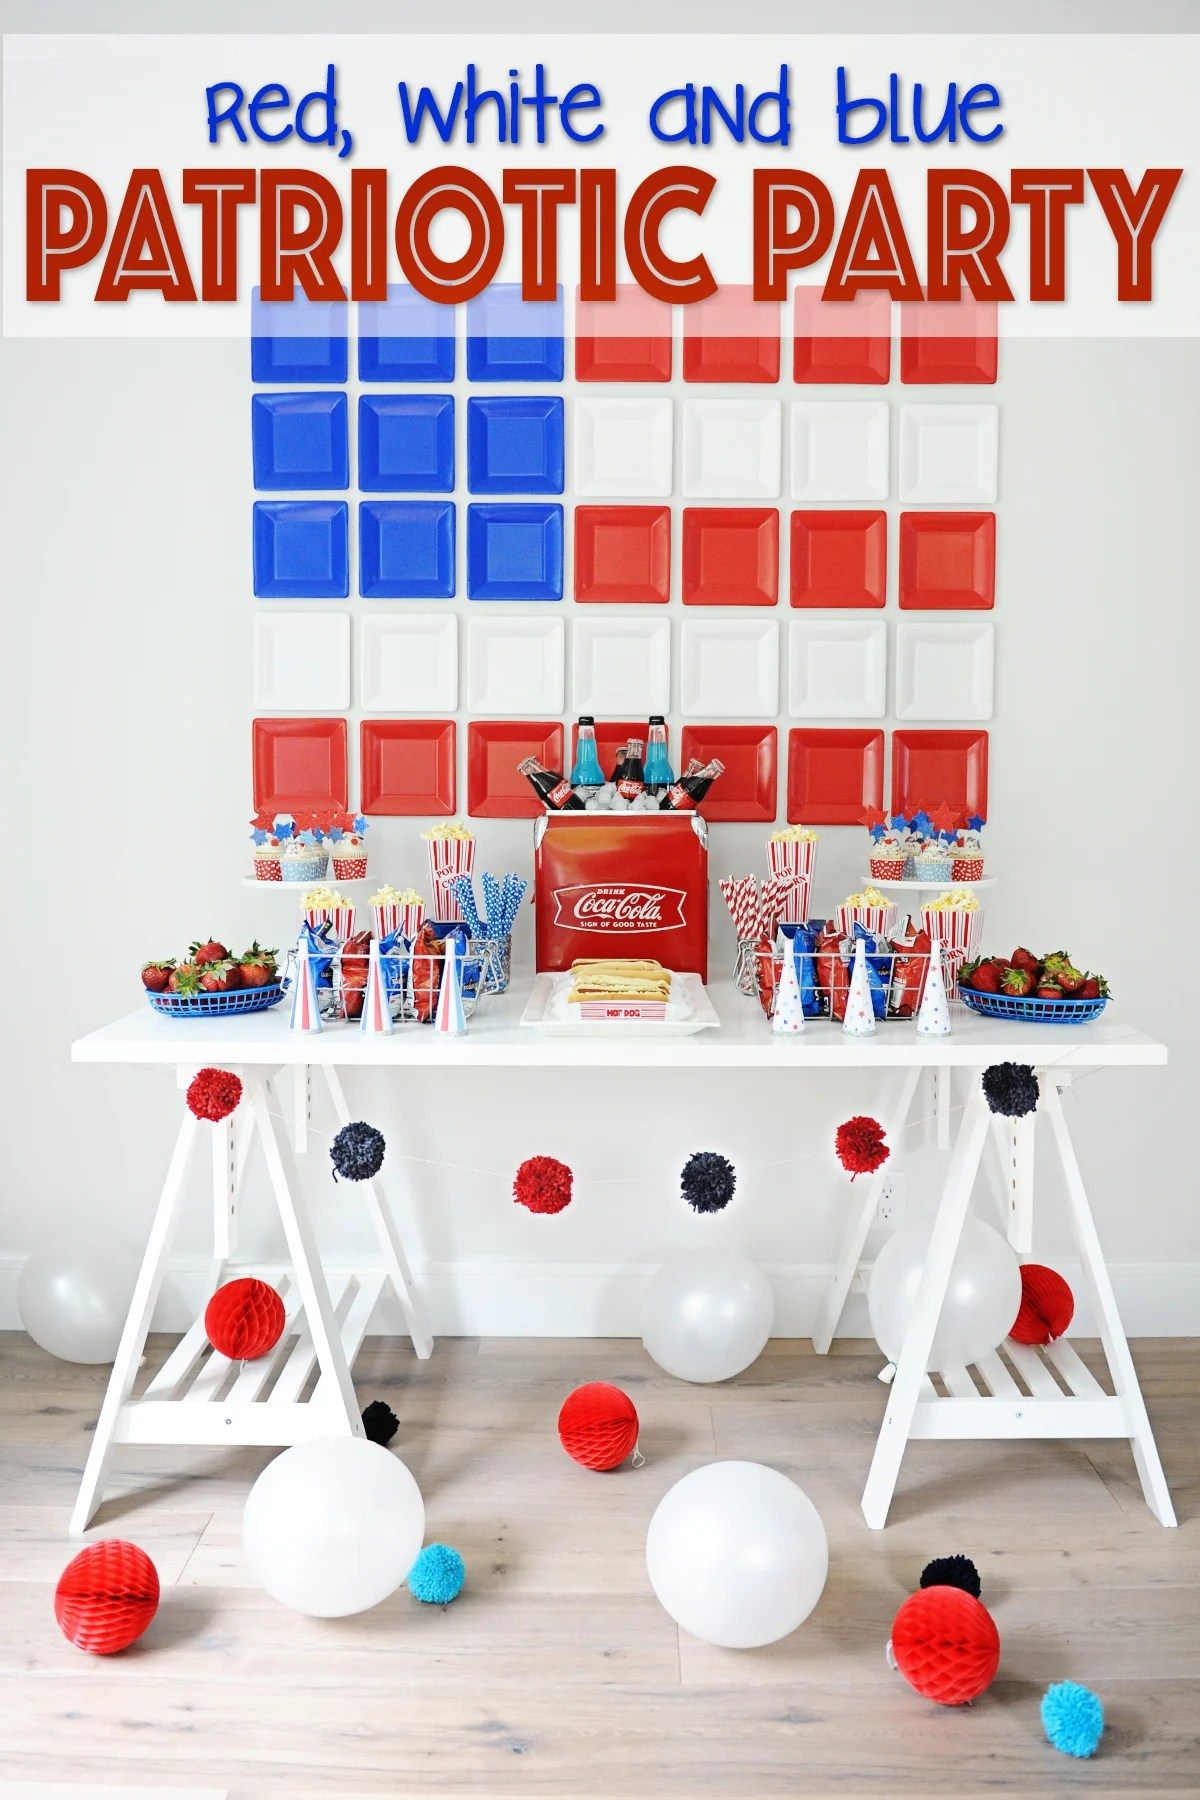 Patriotic Party Decorating Ideas : Red, White and Blue Party